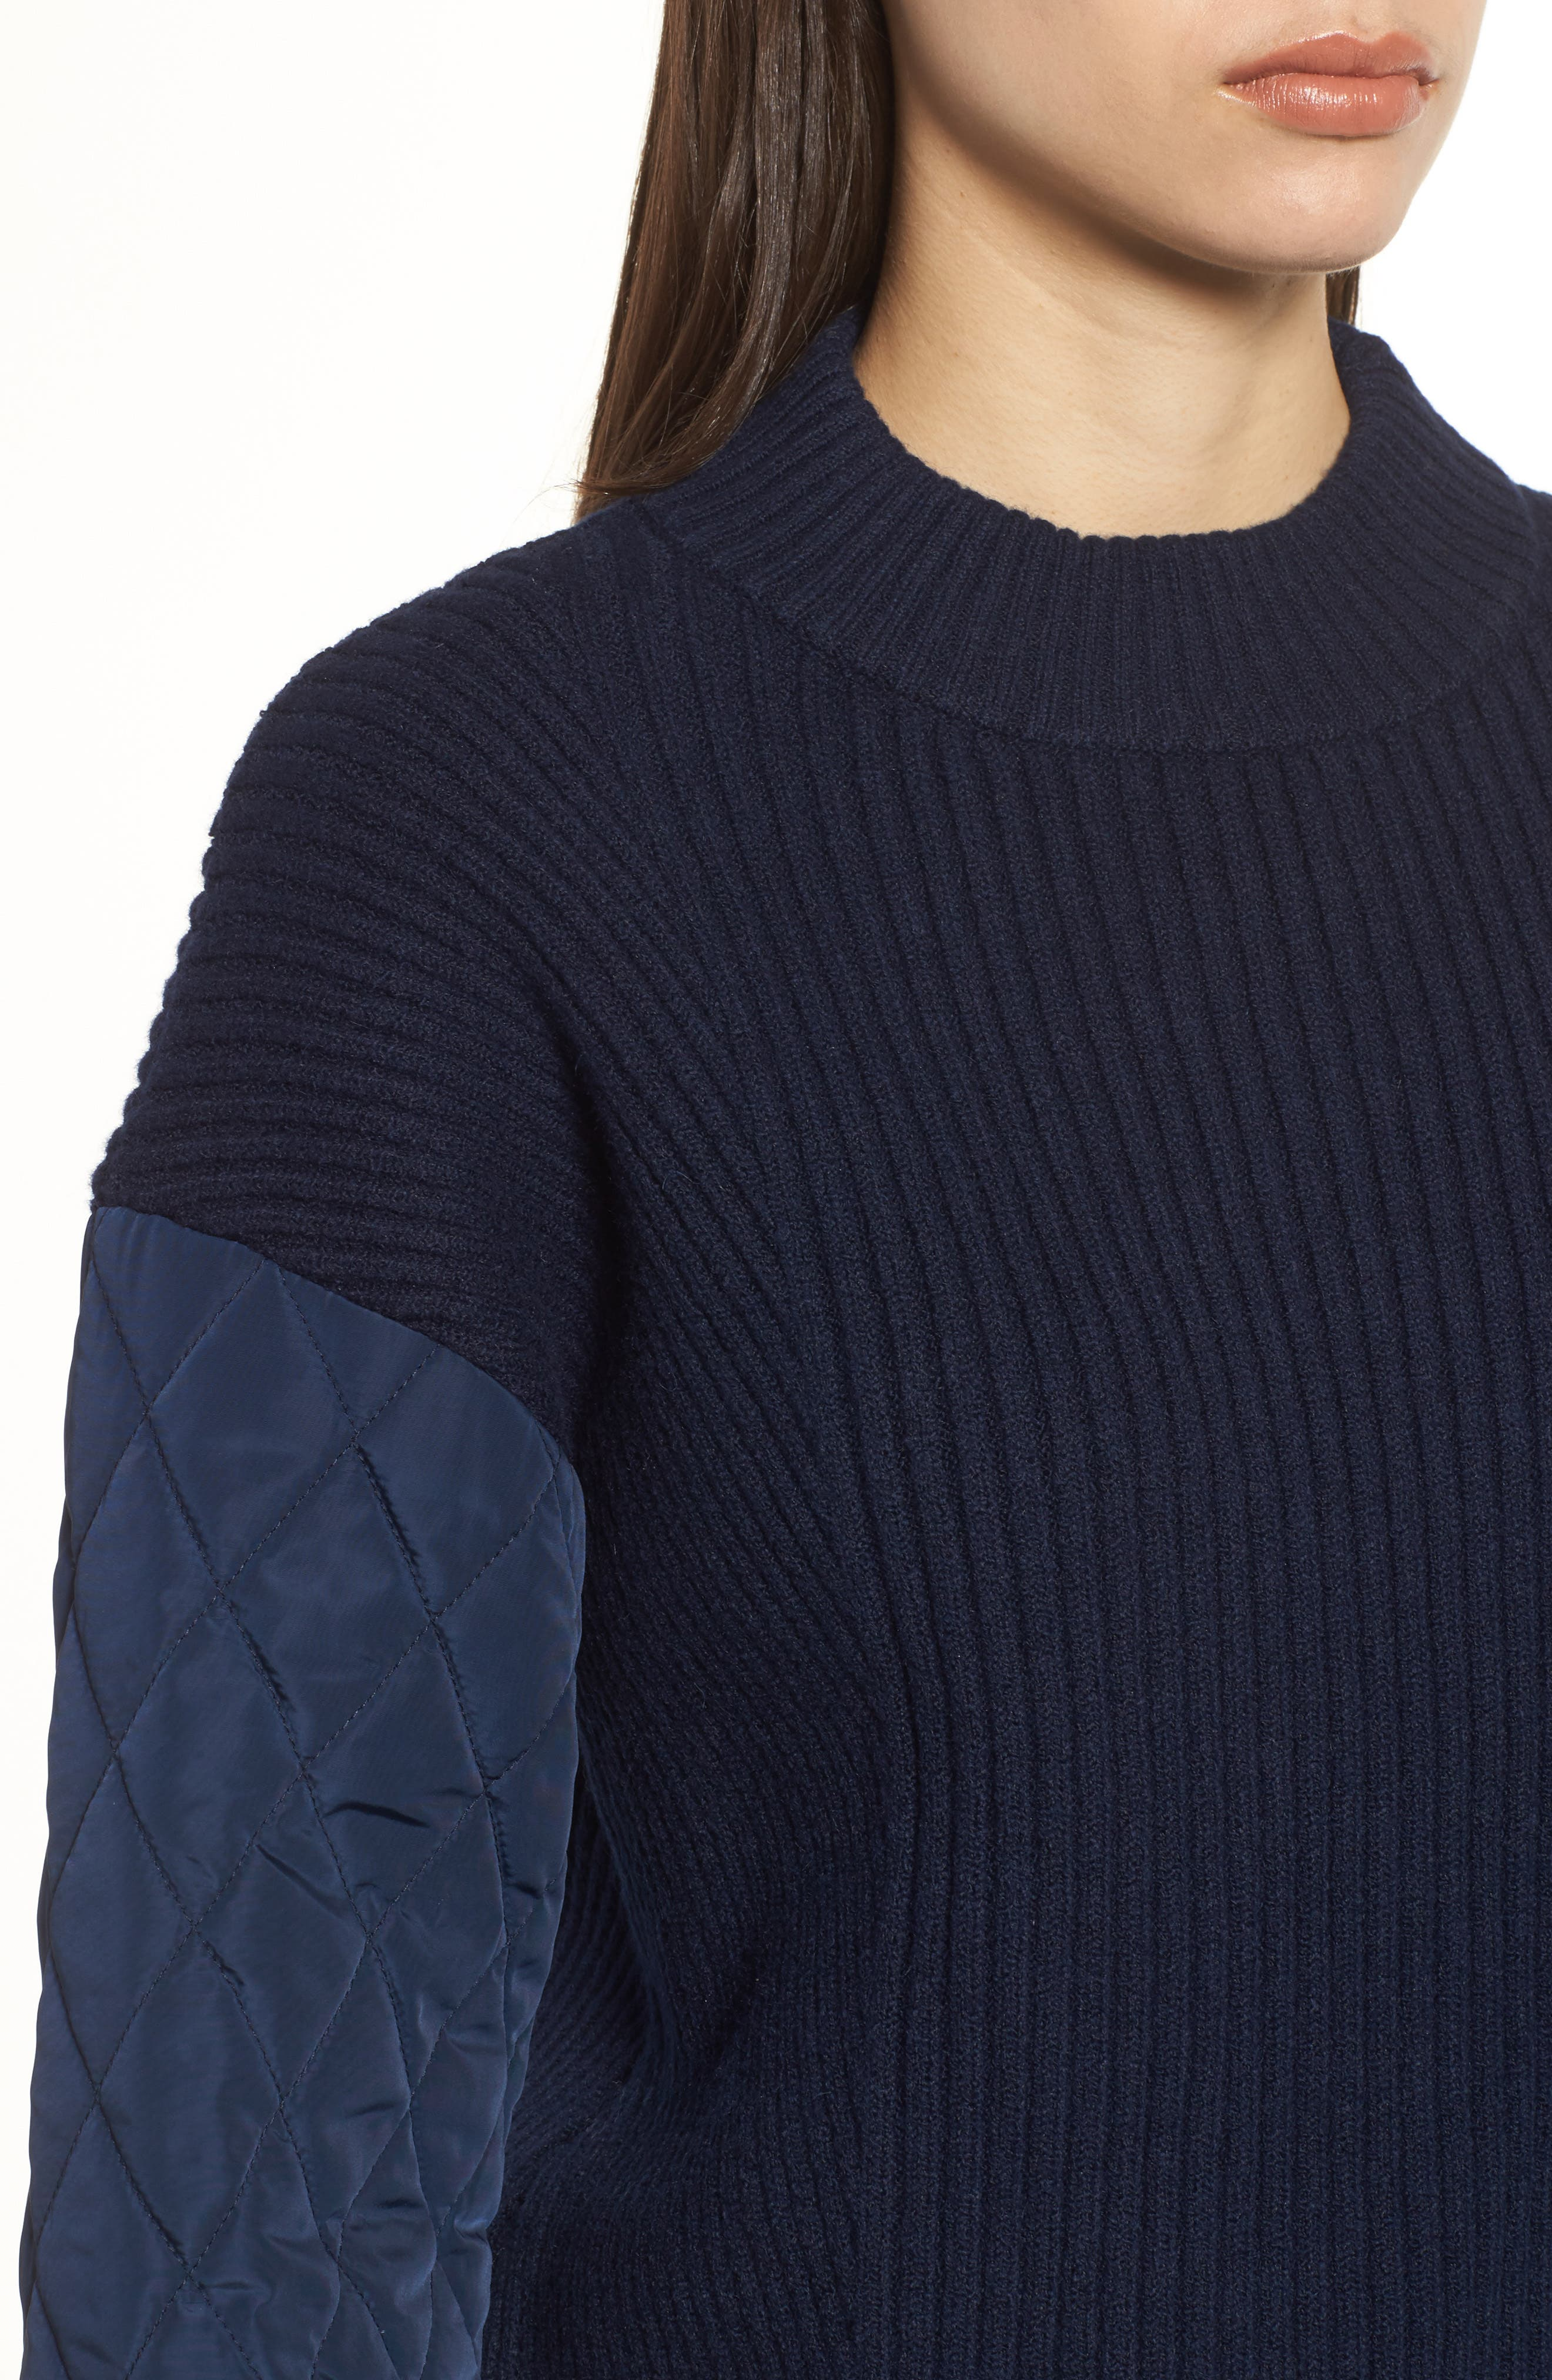 Quilted Sleeve Sweater,                             Alternate thumbnail 4, color,                             INDIGO